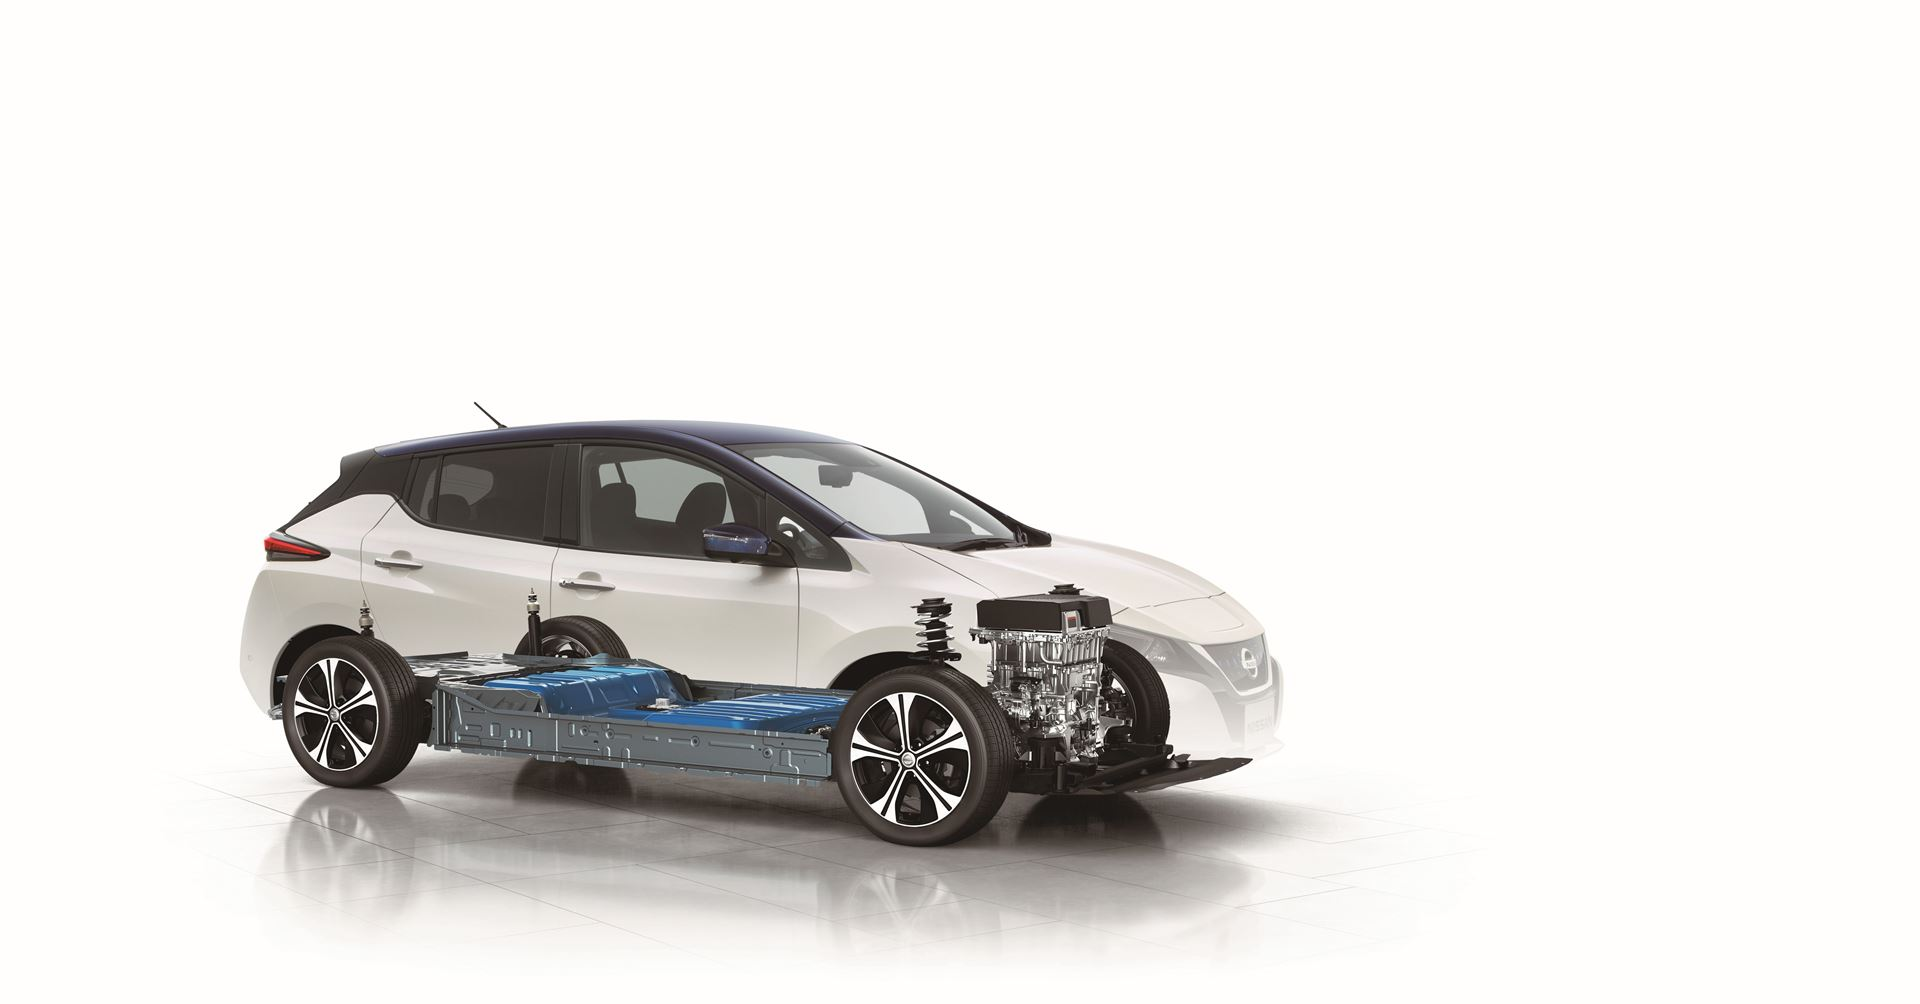 The New Nissan Leaf Launched For Europe: Raising The Bar For Mass Market Electric Vehicles